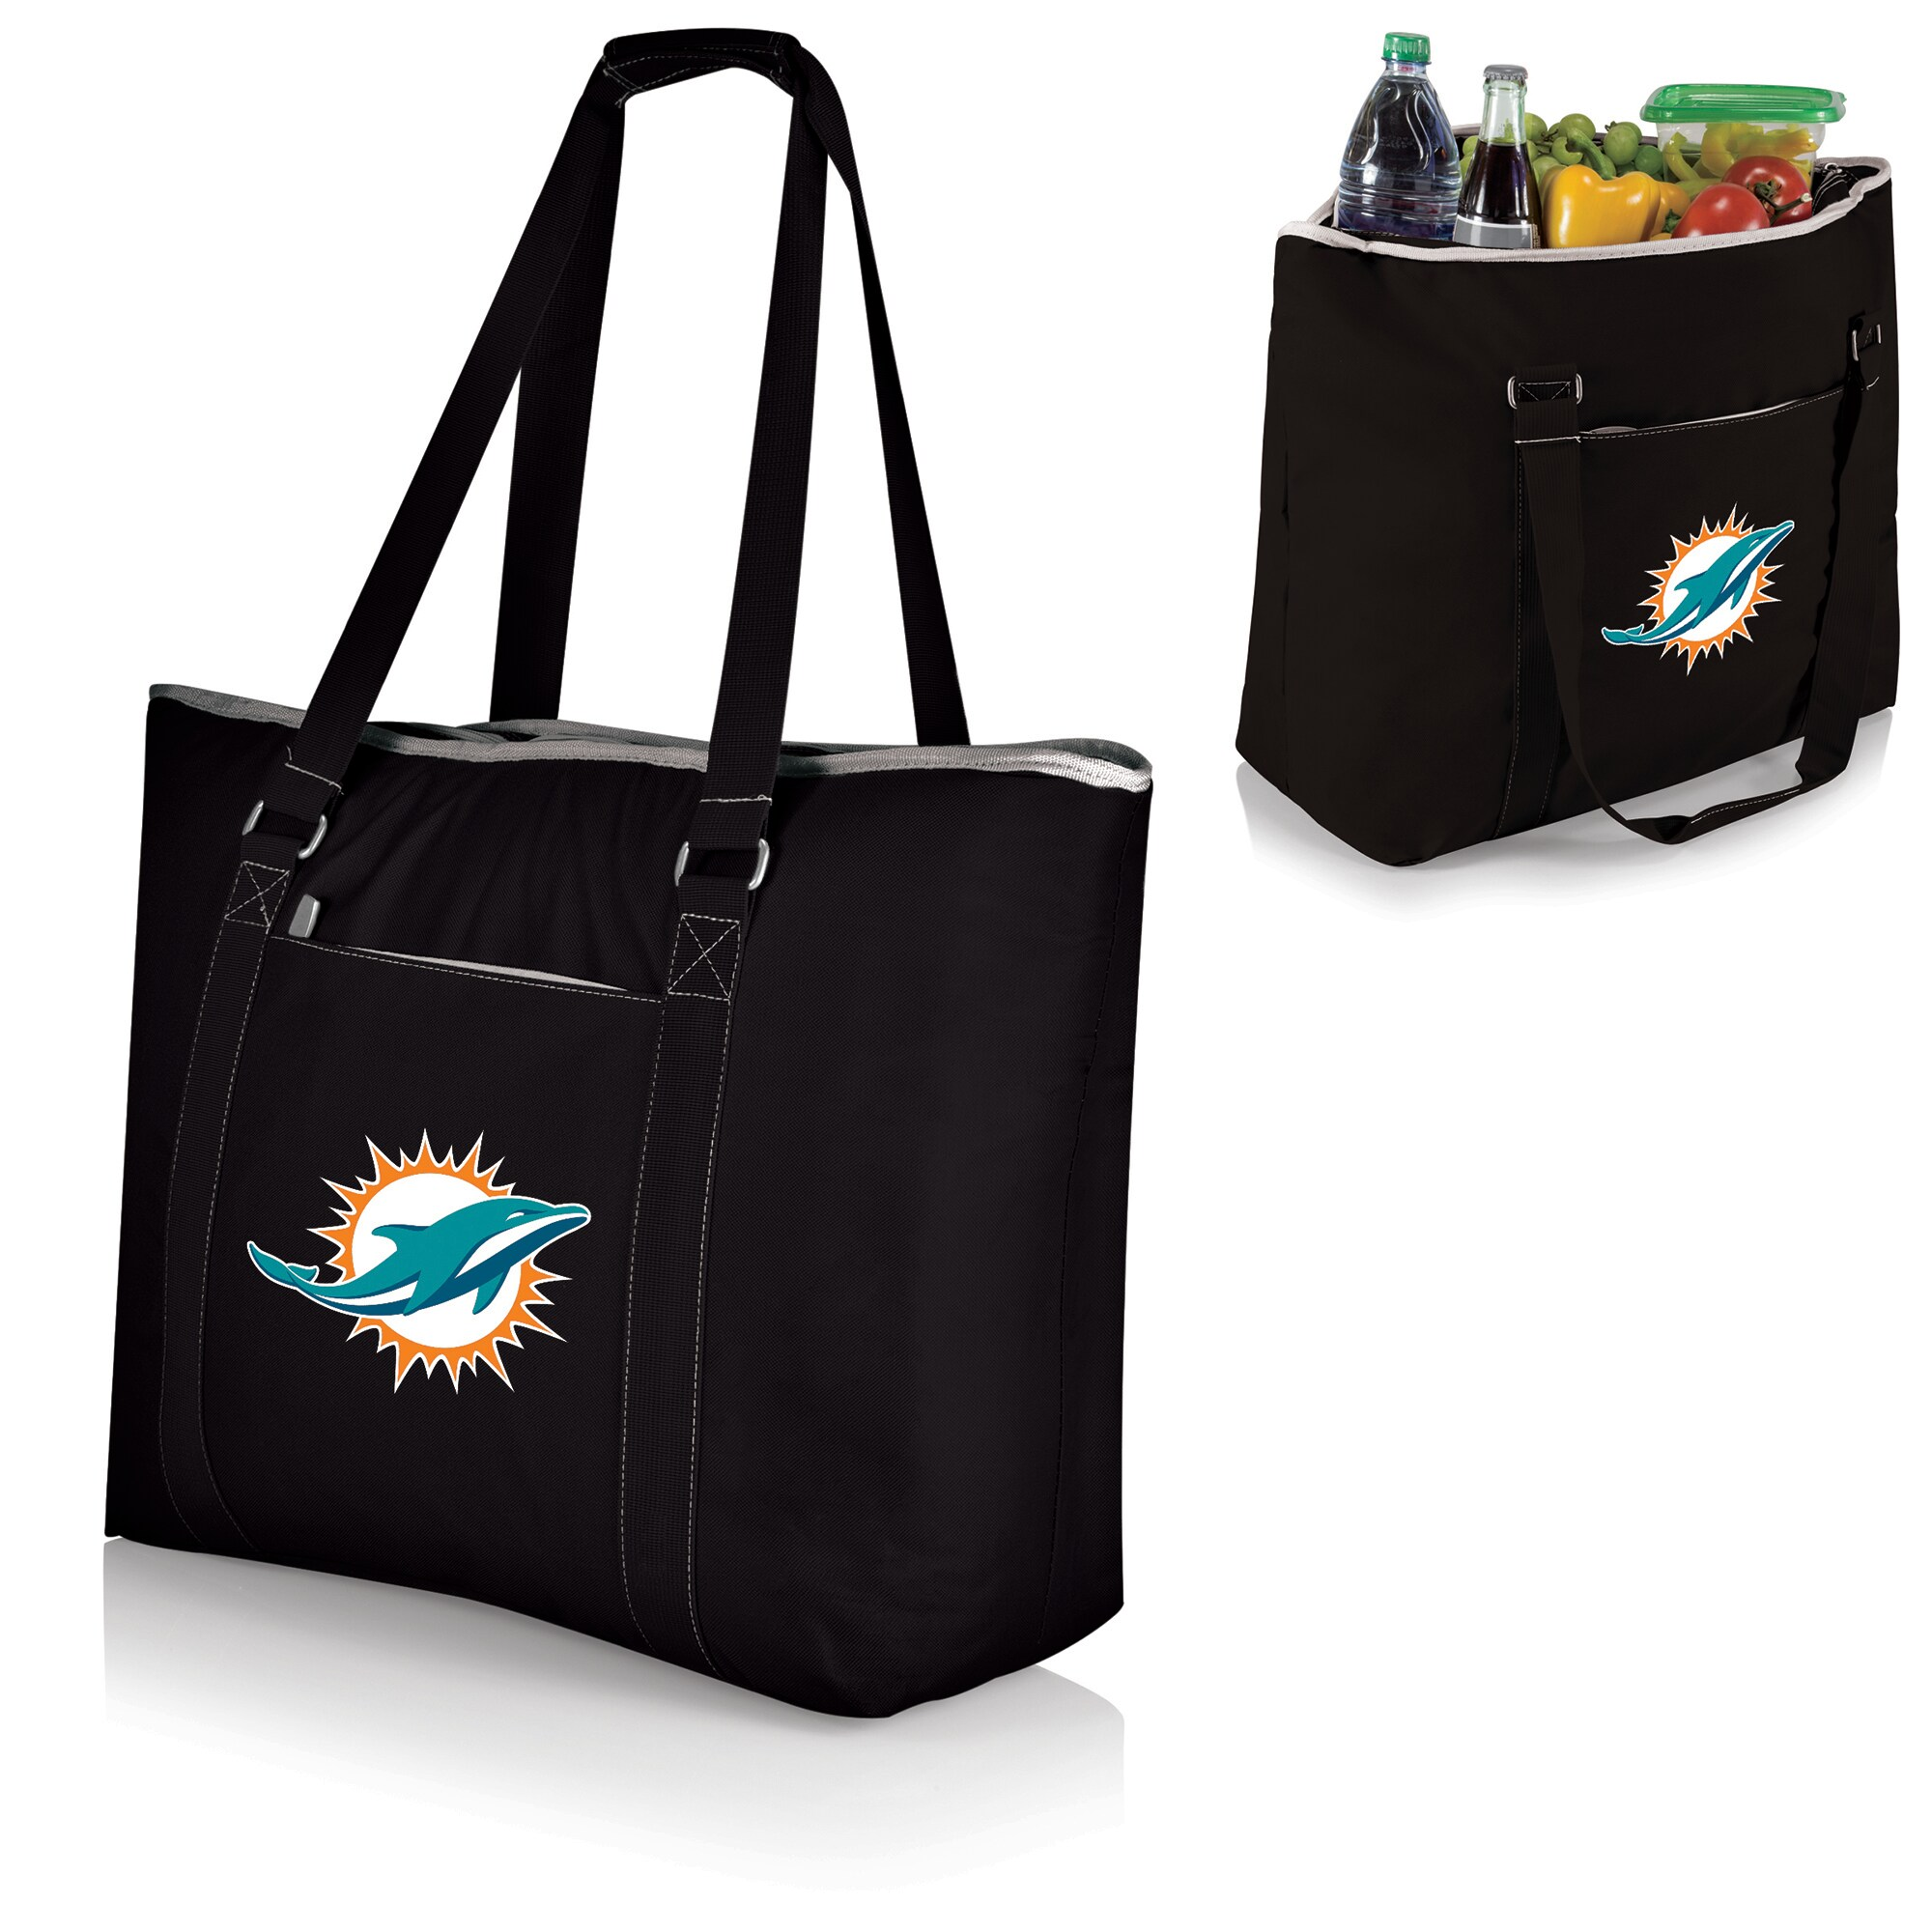 Miami Dolphins Tahoe XL Cooler Tote